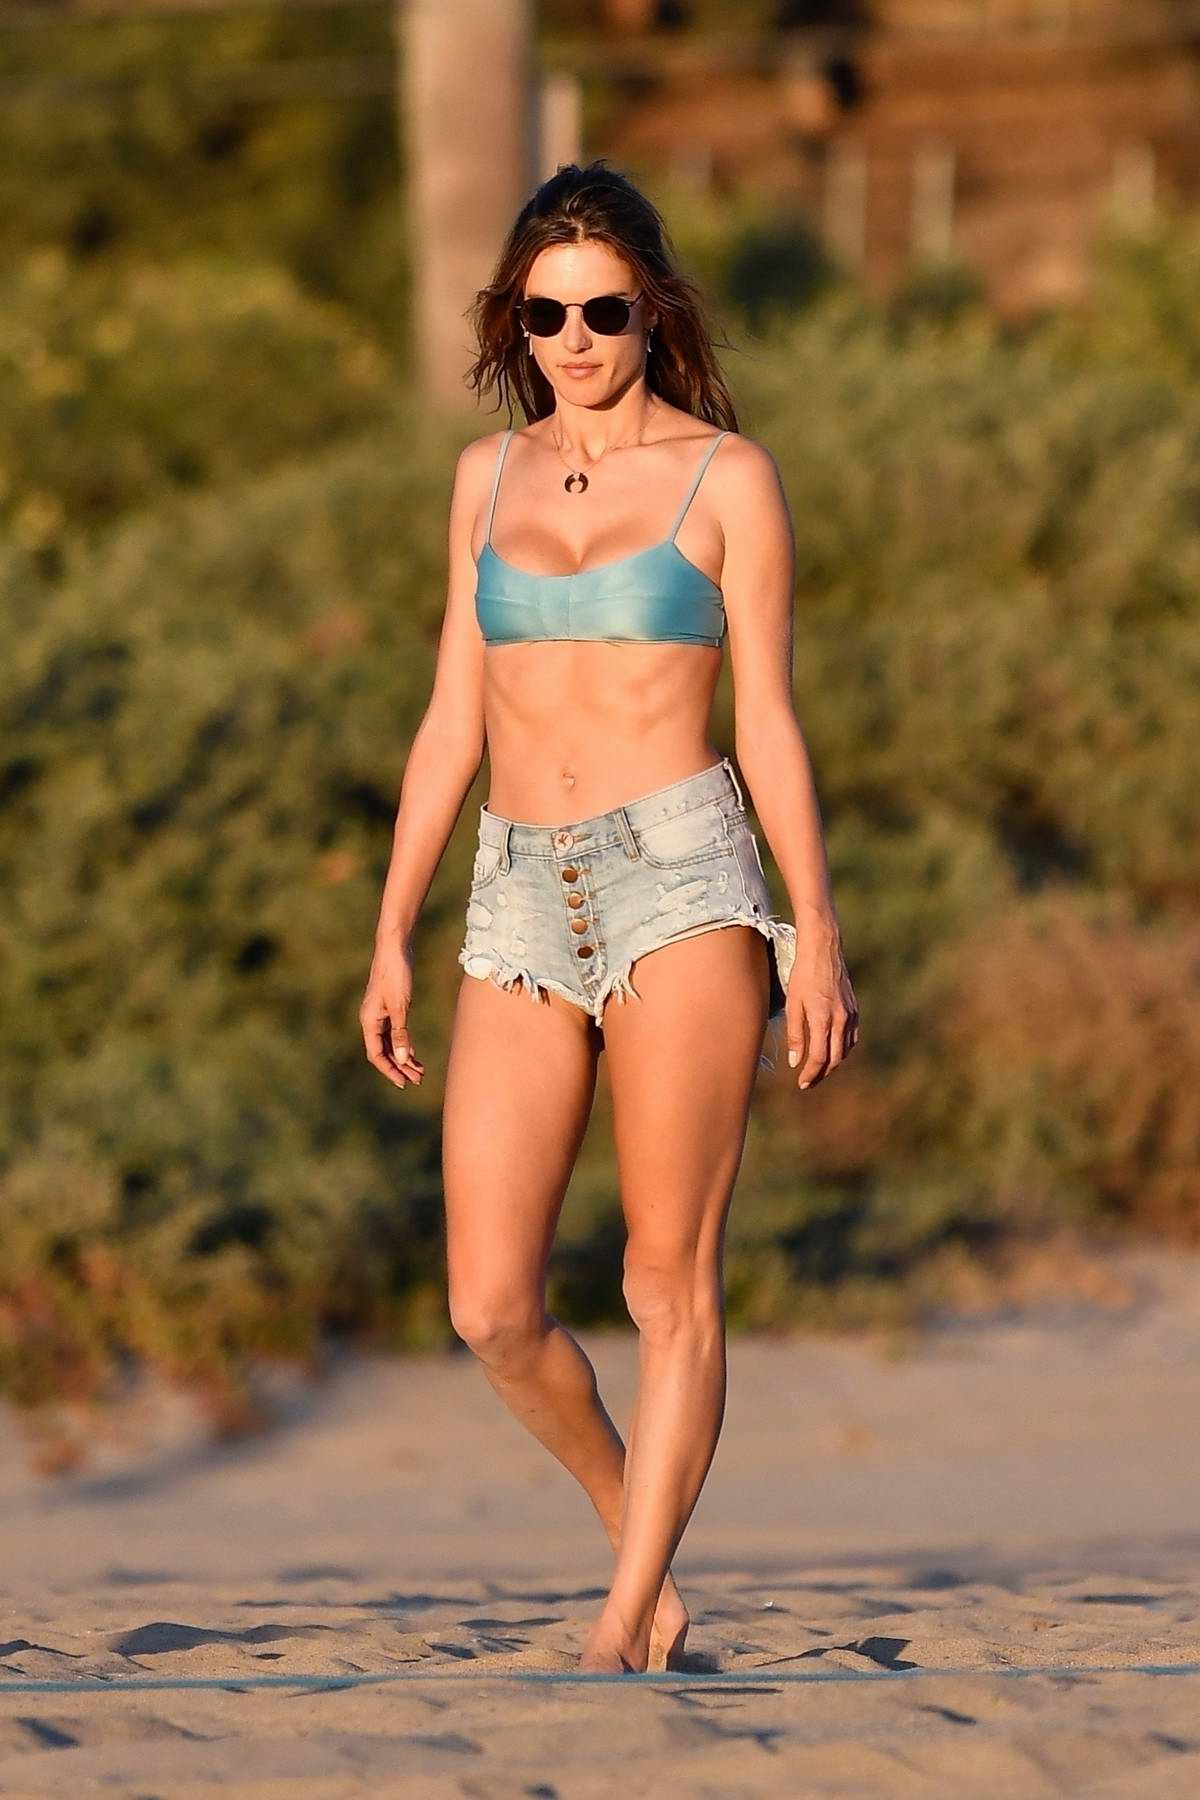 Alessandra Ambrosio rocks a blue bikini top and denim shorts during a beach day with friends and her dogs in Santa Monica, California